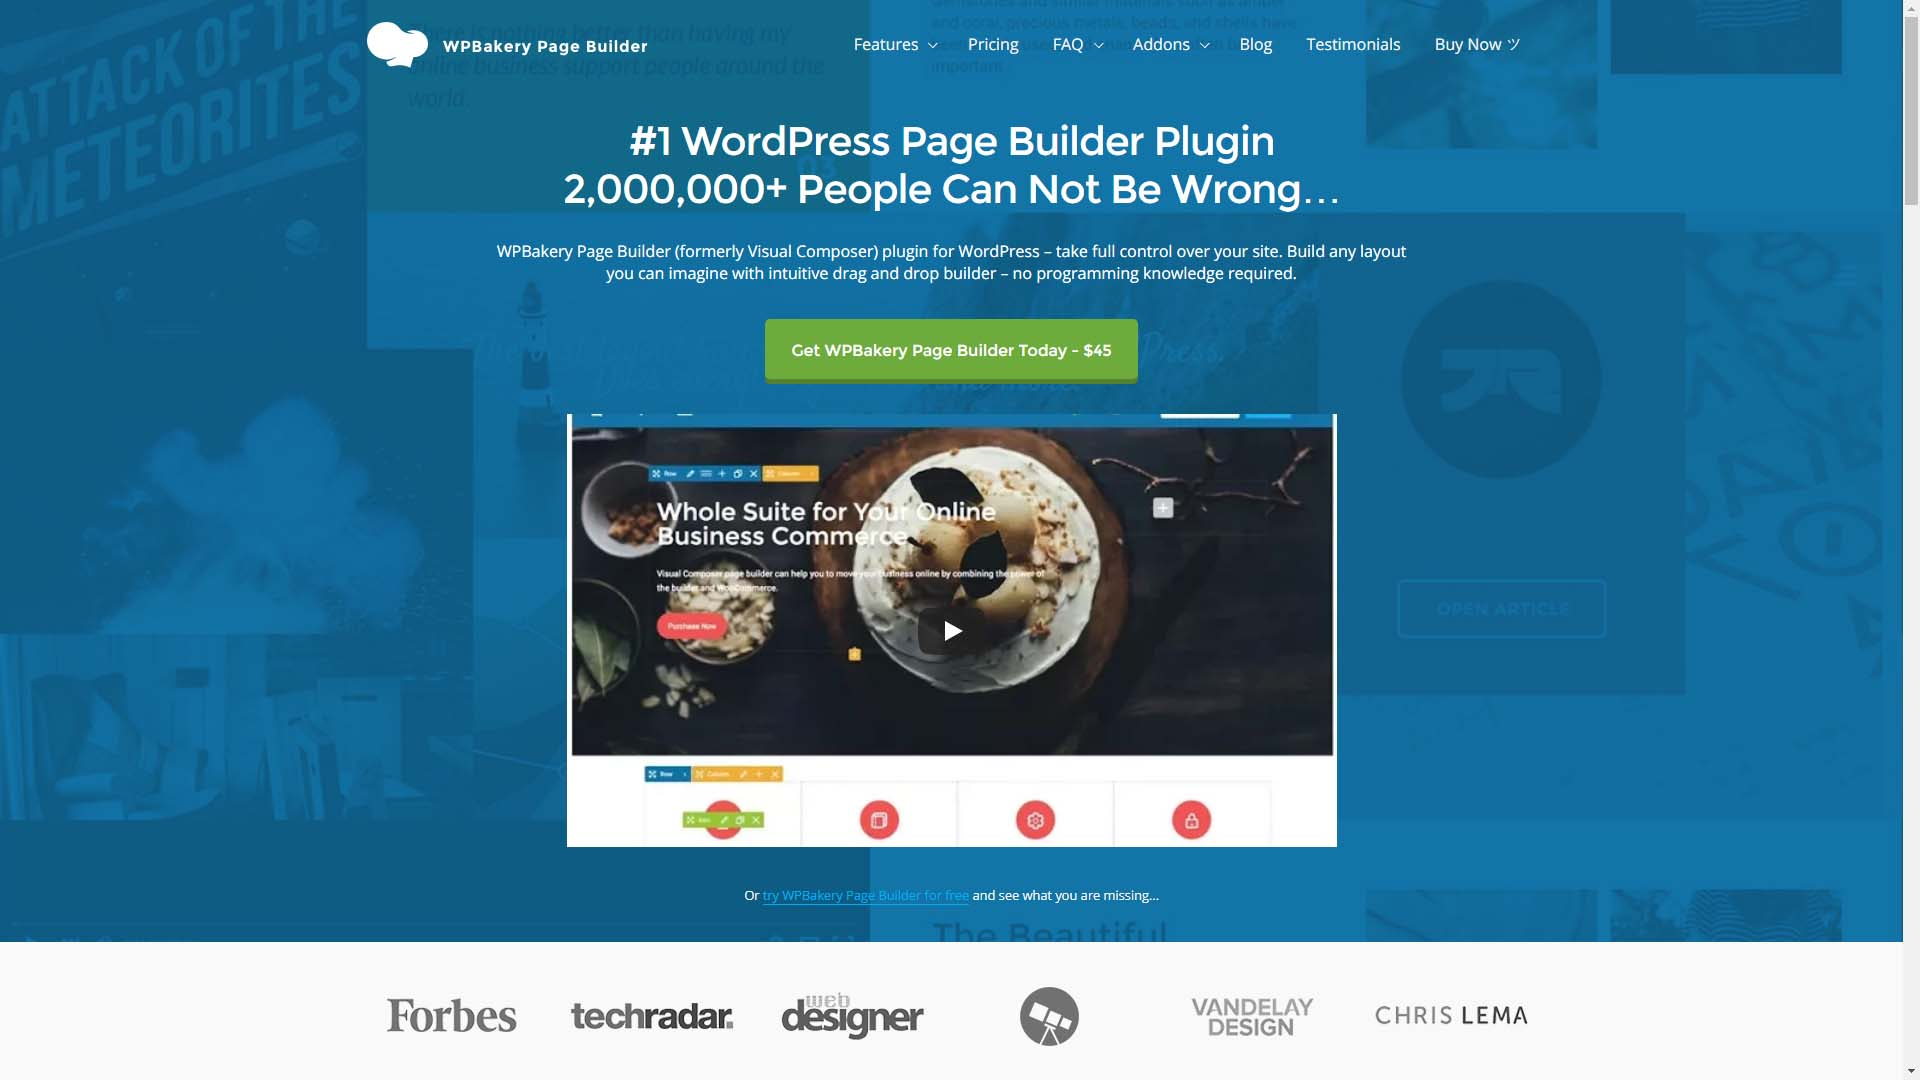 The WPBakery Page Builder homepage.